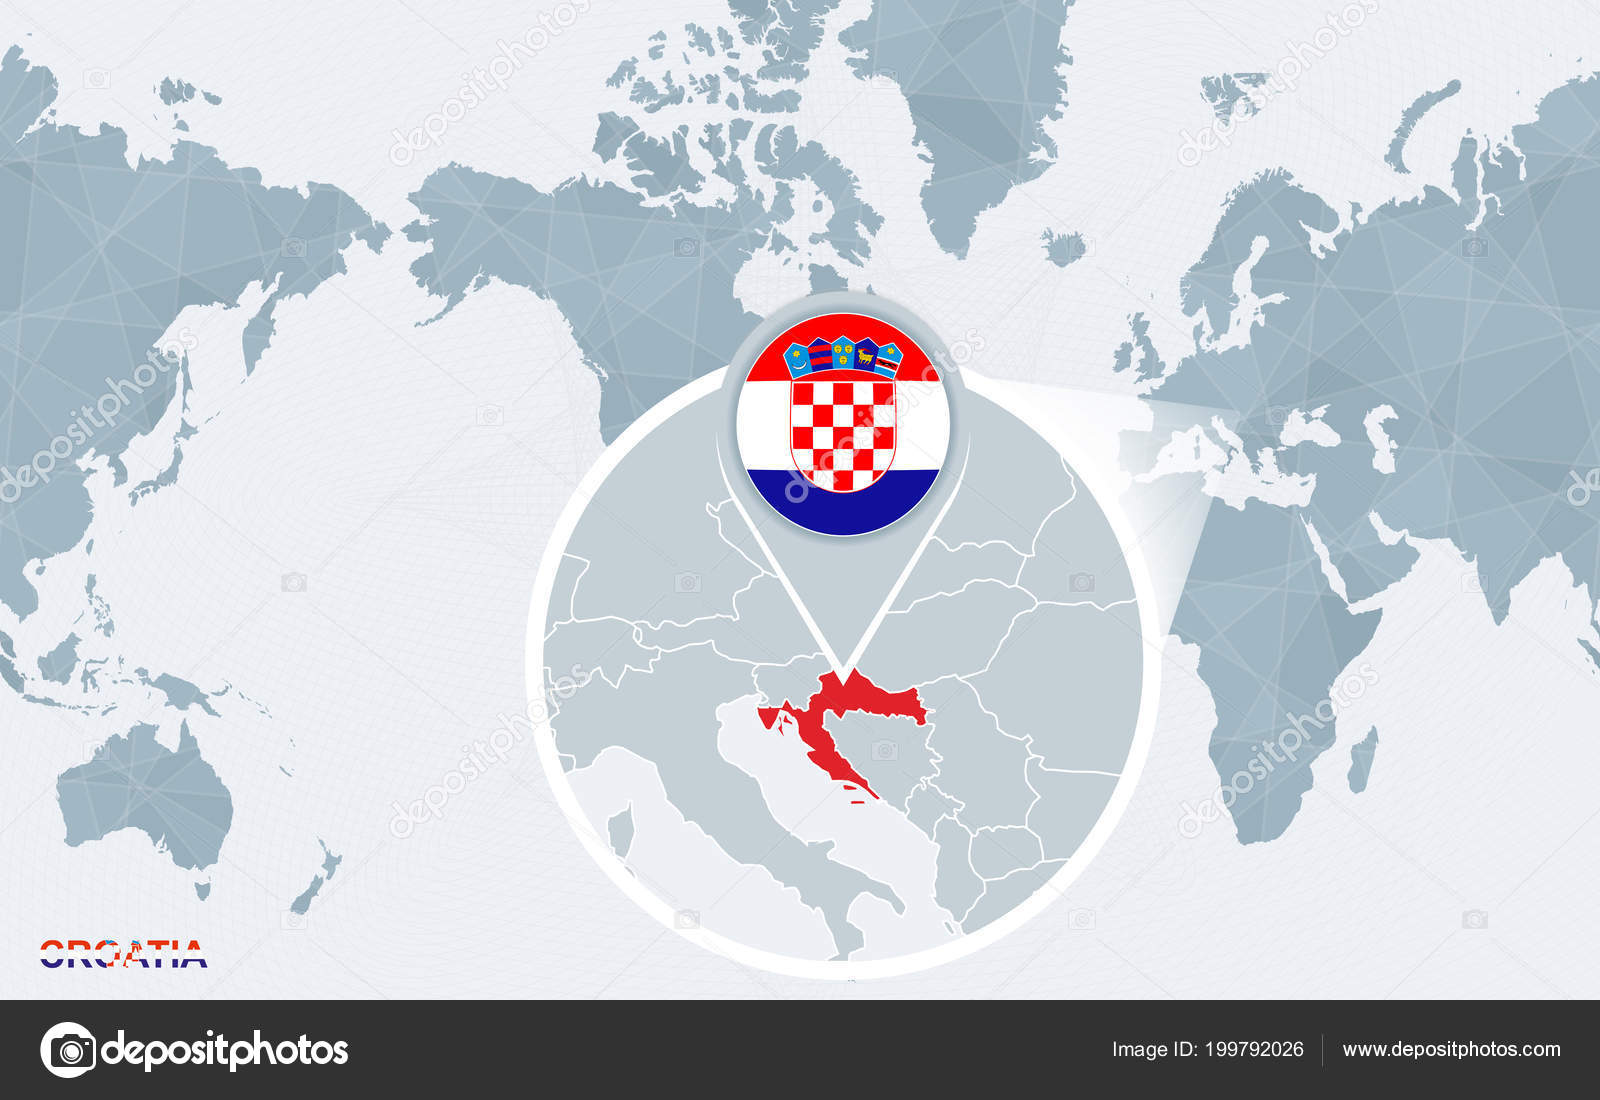 World map centered america magnified croatia blue flag map croatia world map centered america magnified croatia blue flag map croatia stock vector gumiabroncs Images